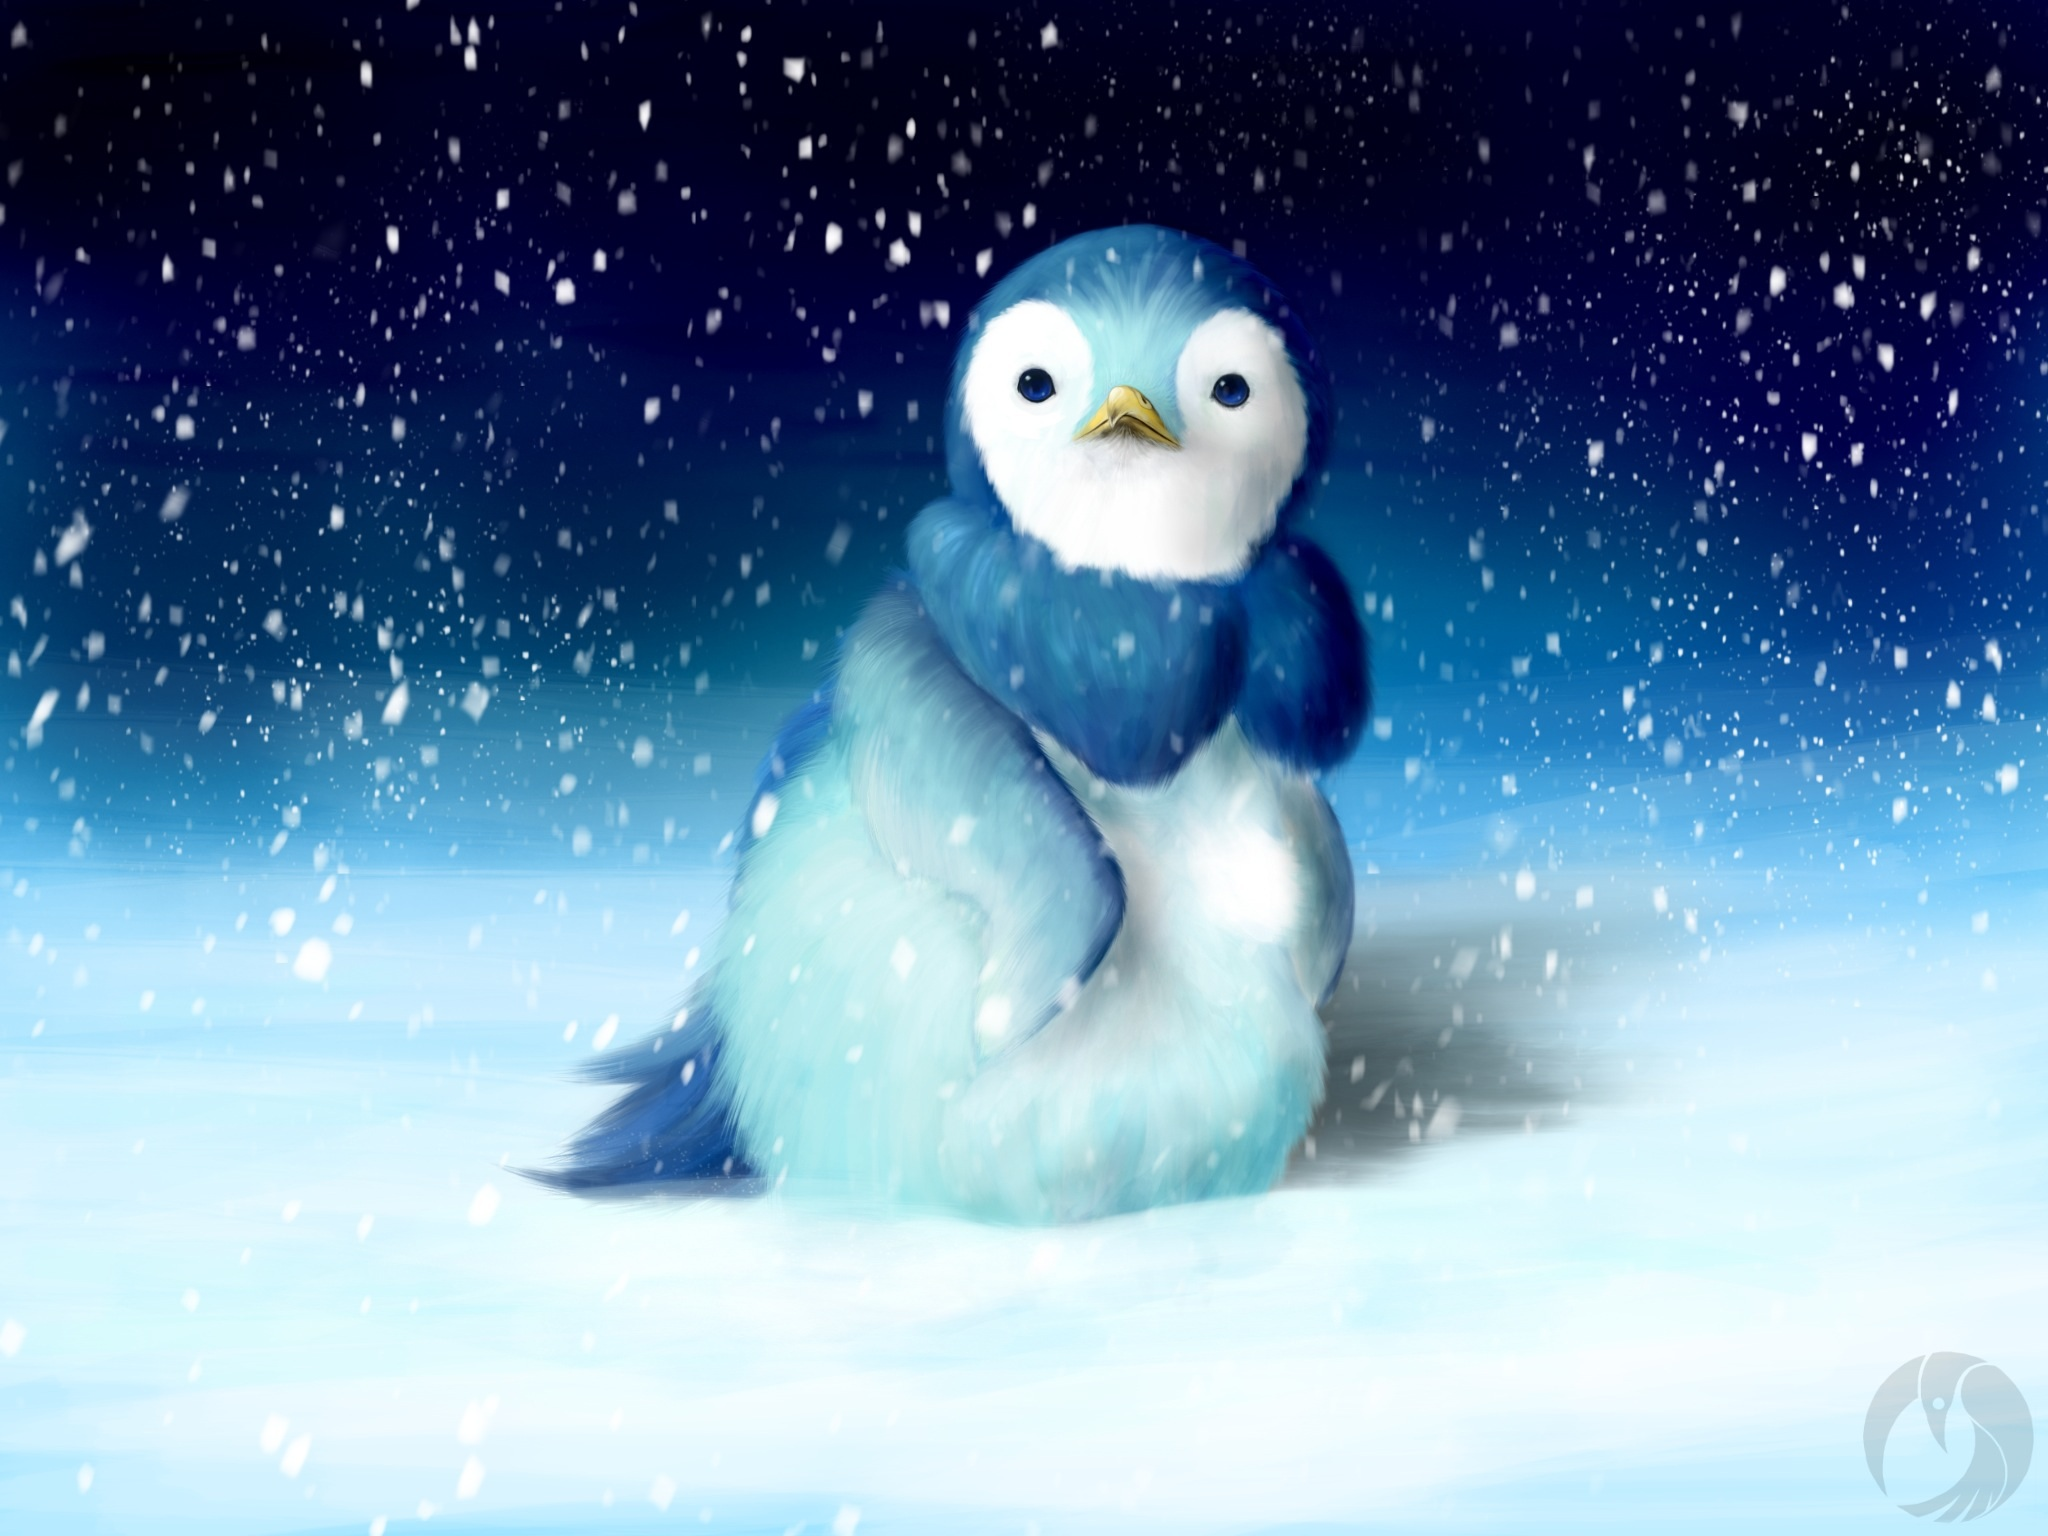 Cute Pokemon Iphone Wallpaper Piplup Hd Wallpapers